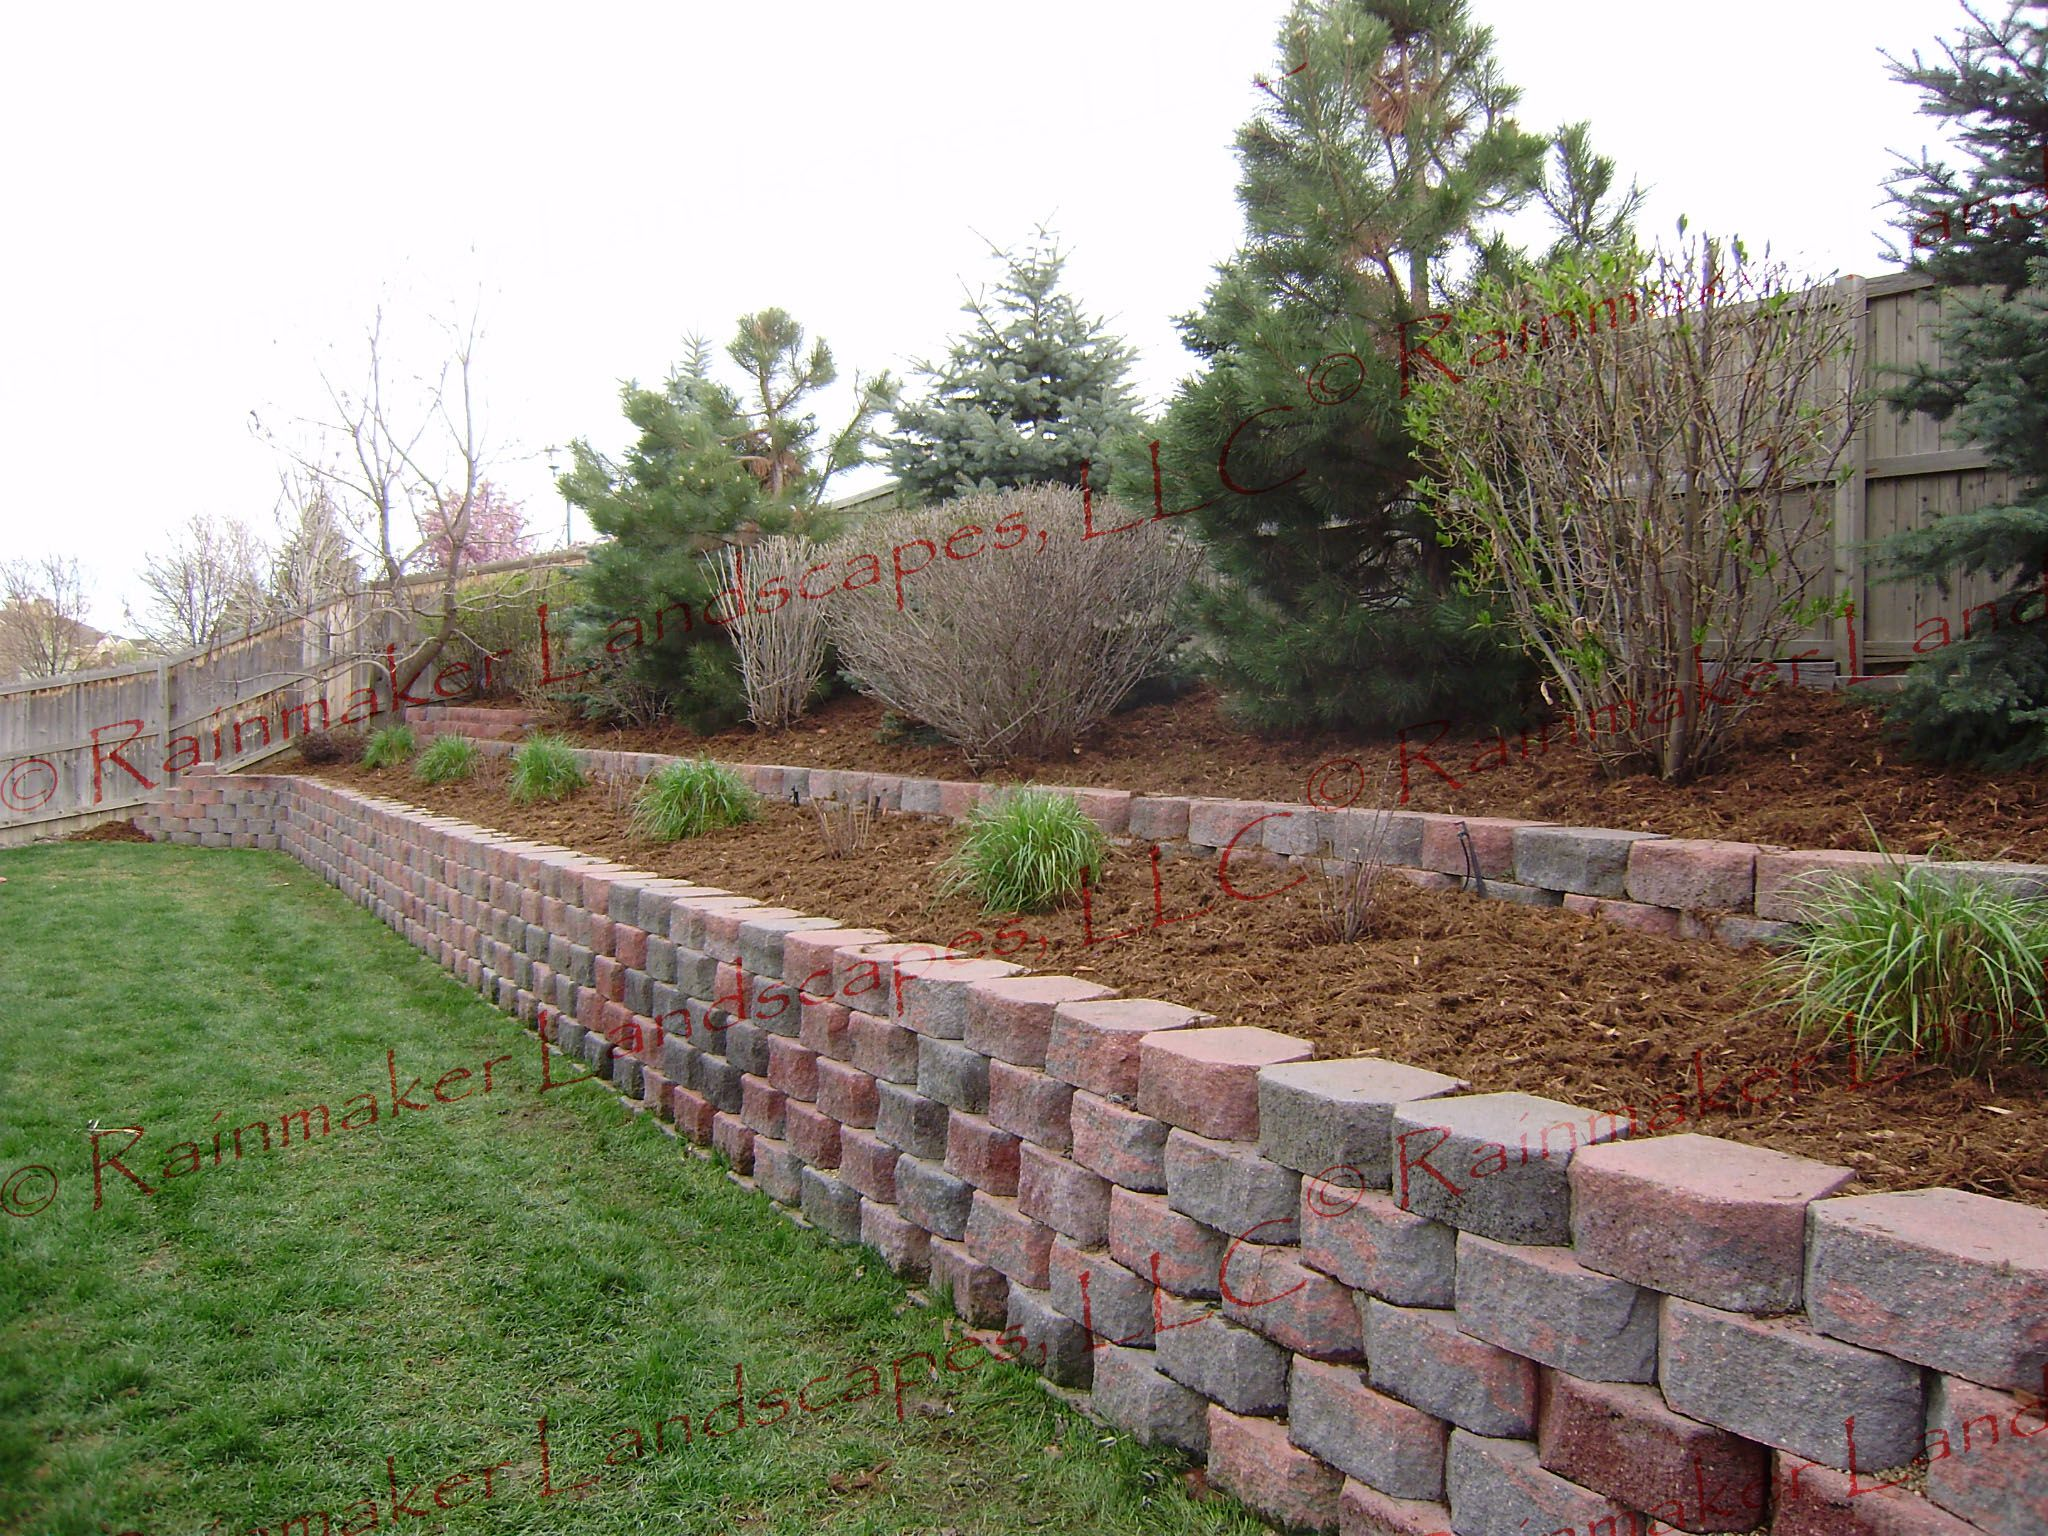 Double Tiered Retaining Wall With Trees And Shrubs Planted And